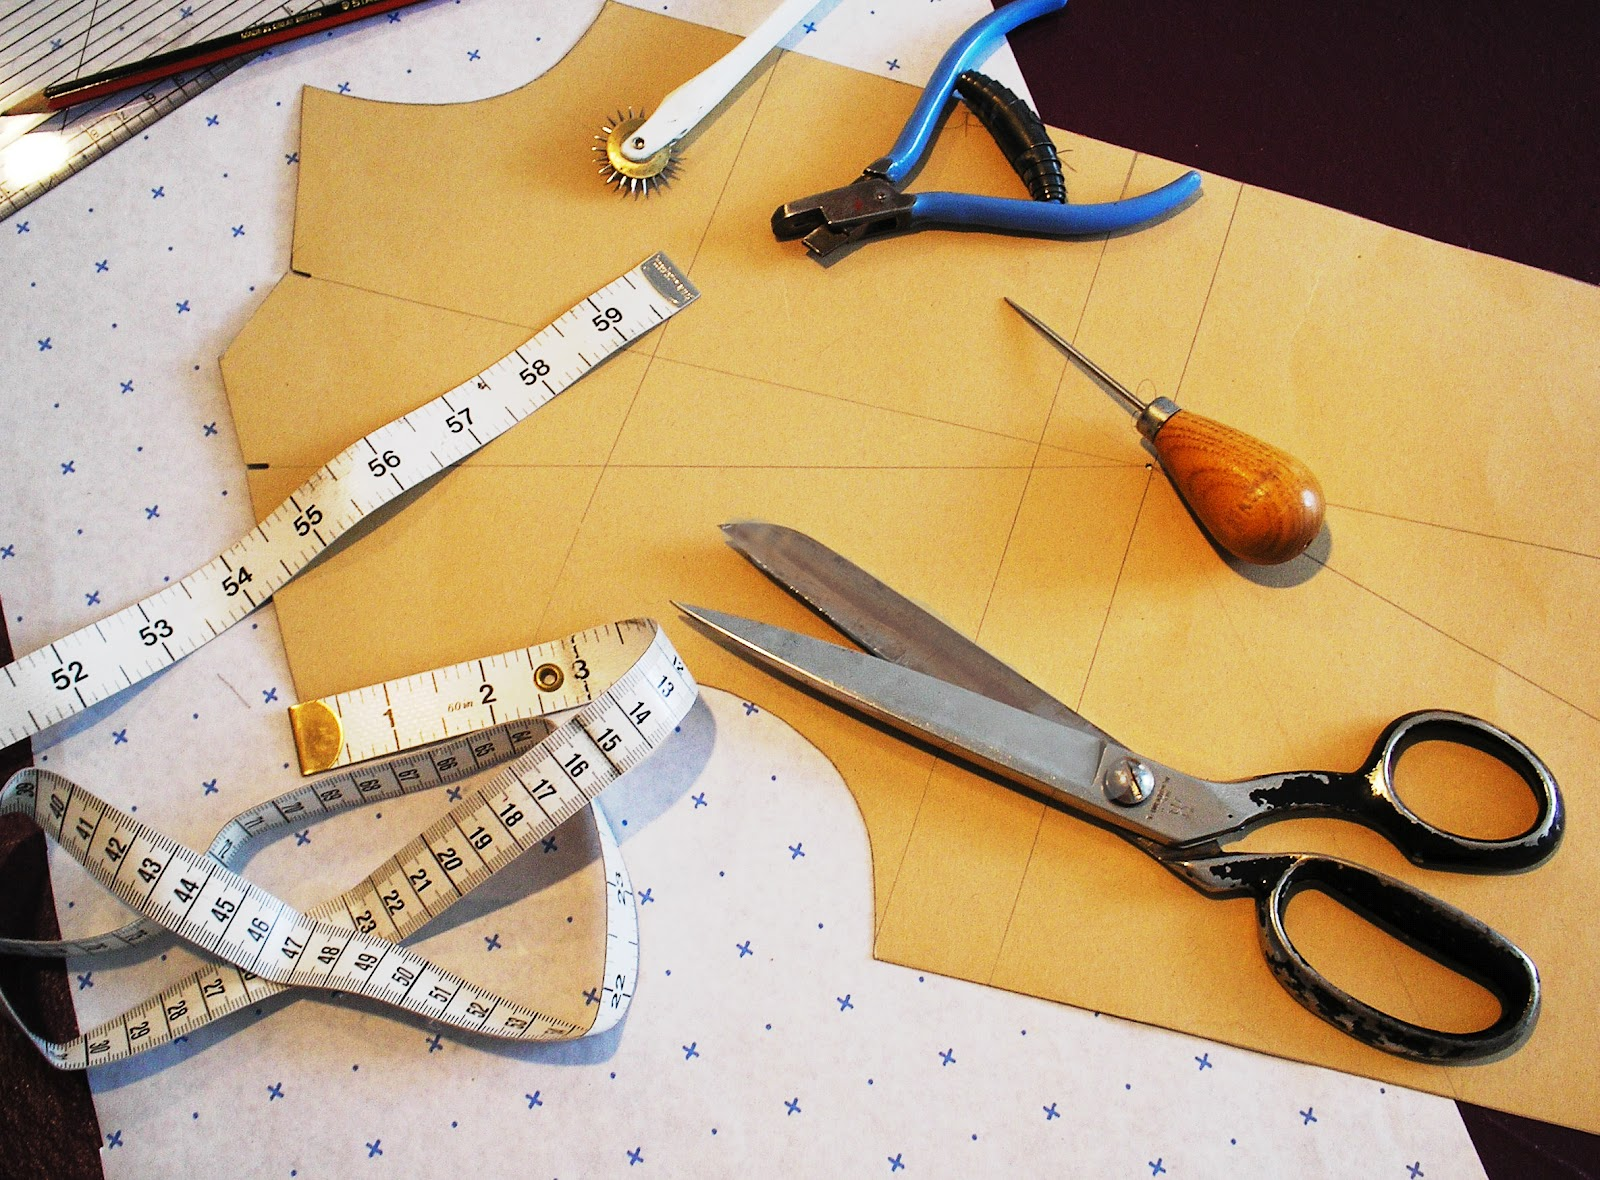 2 day introduction to pattern cutting the craft studio for Michaels crafts job application